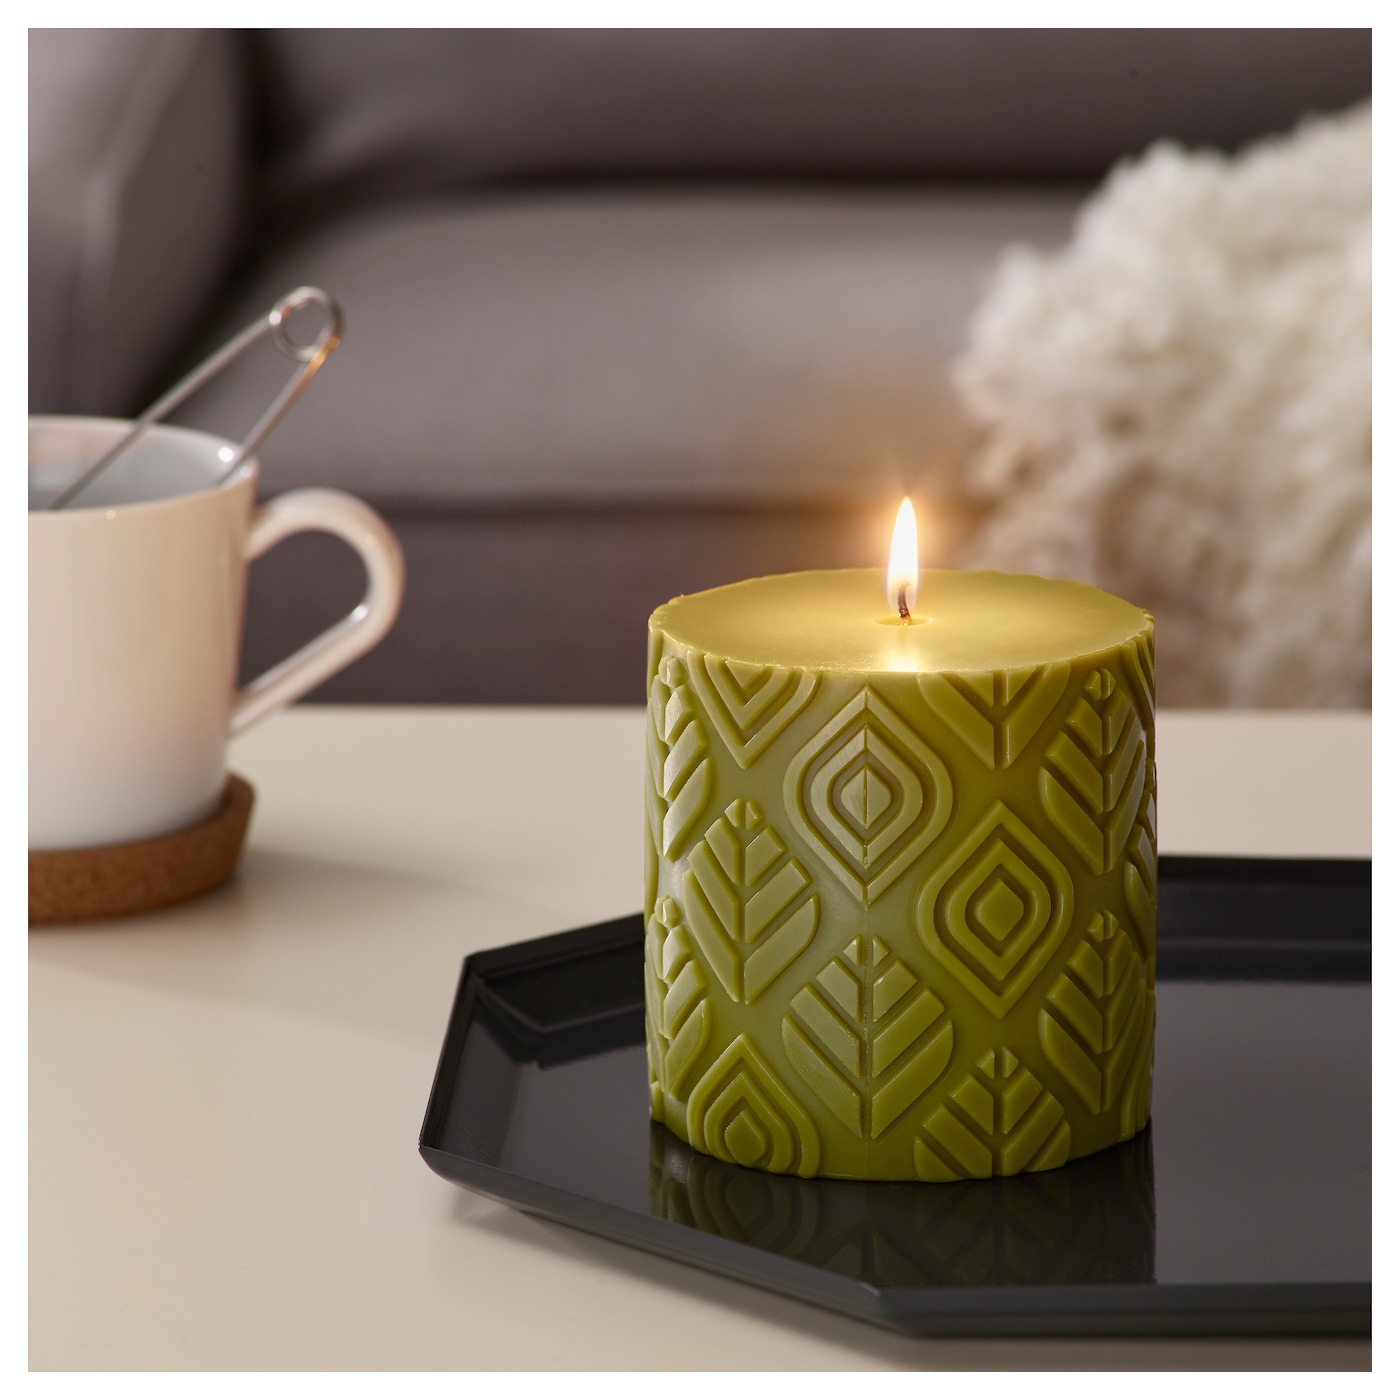 IKEA UTREDD scented block candle An earthy scent with notes of moss and forest.